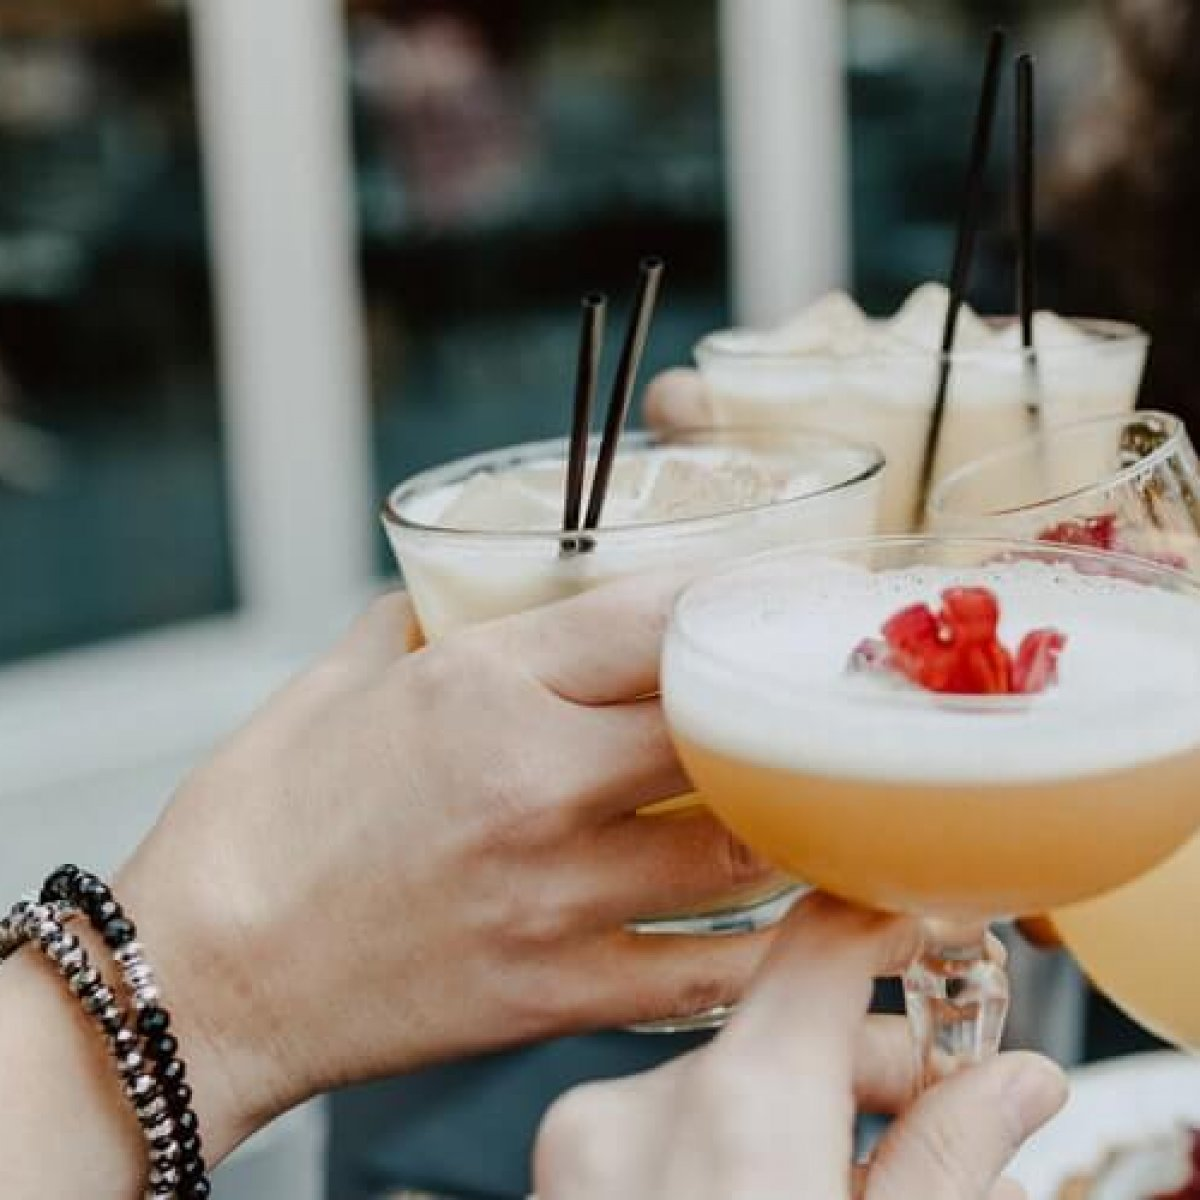 unsplash.cocktails - National Restaurant Properties